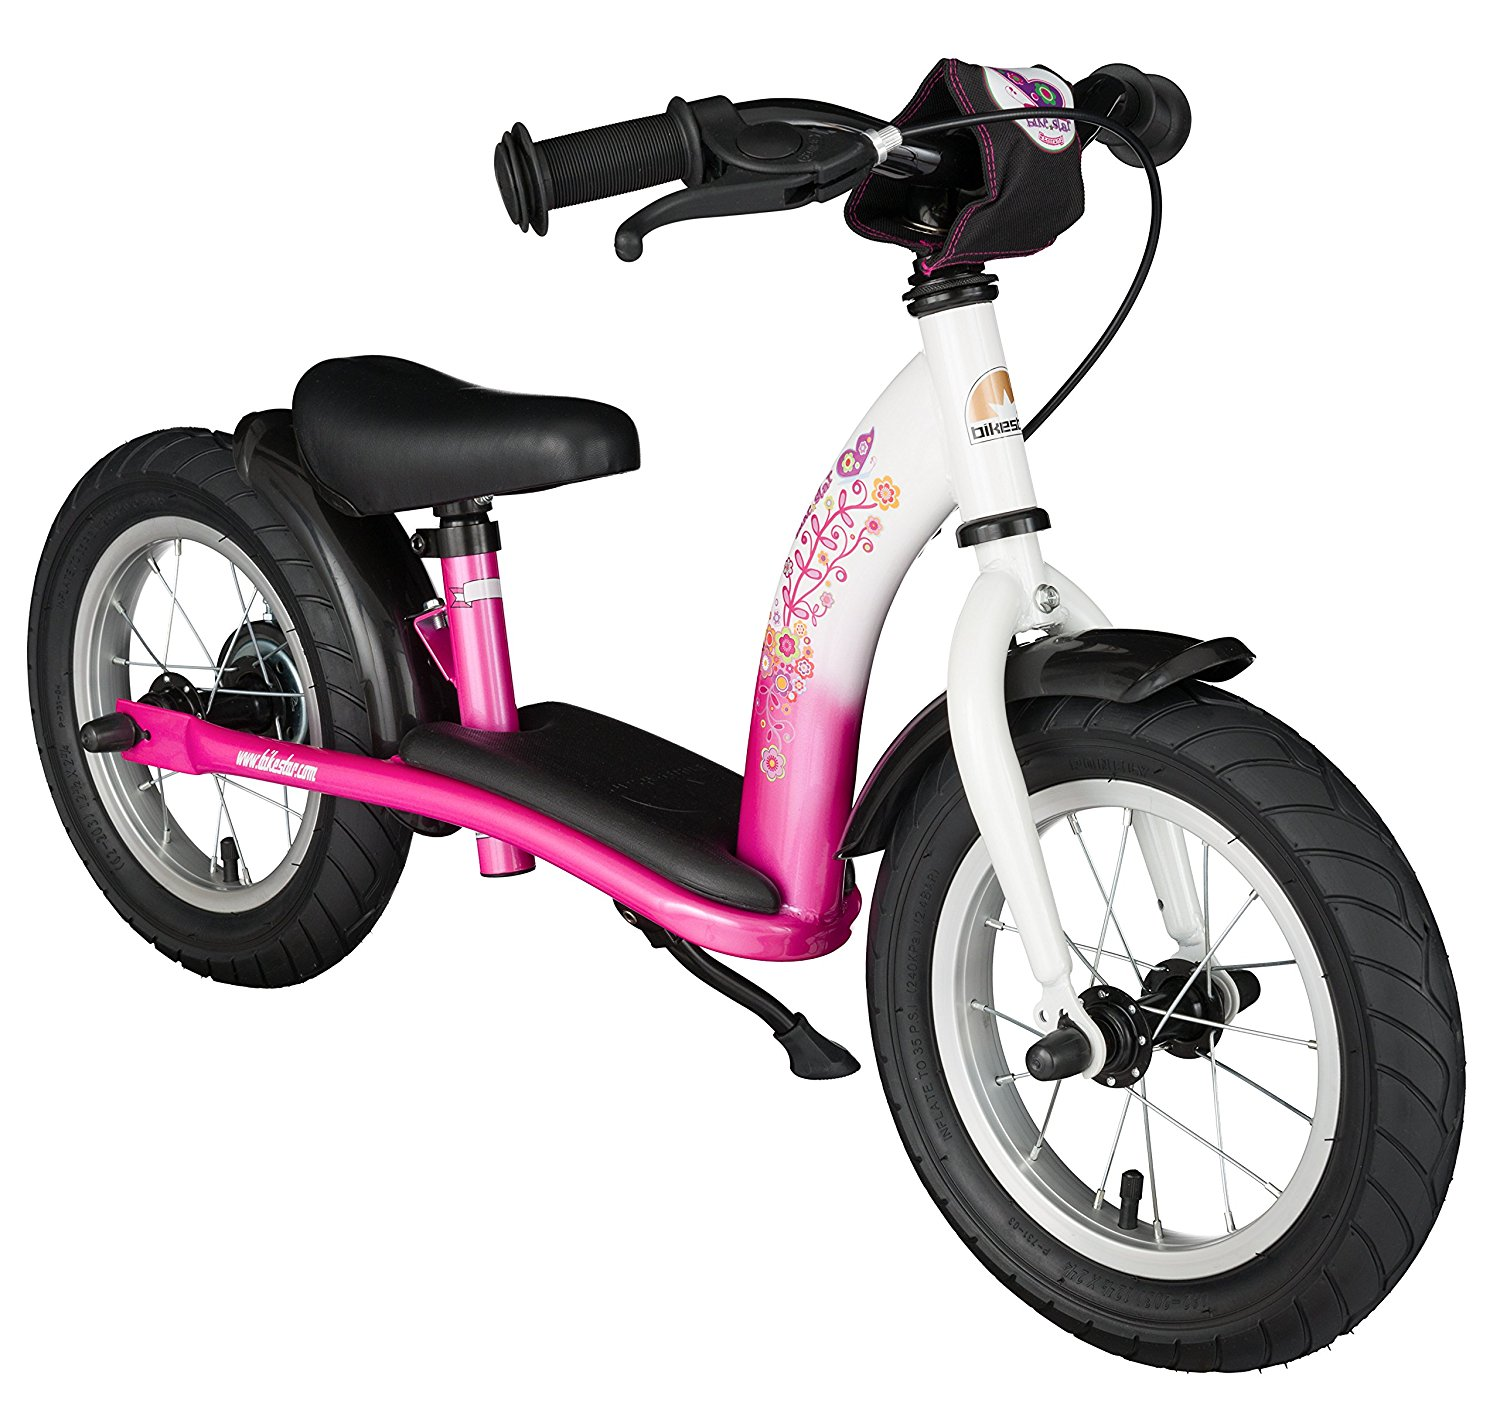 BikeStar 10 inch Kids Training Balance Bike Classic Pink and White by Star Trademarks